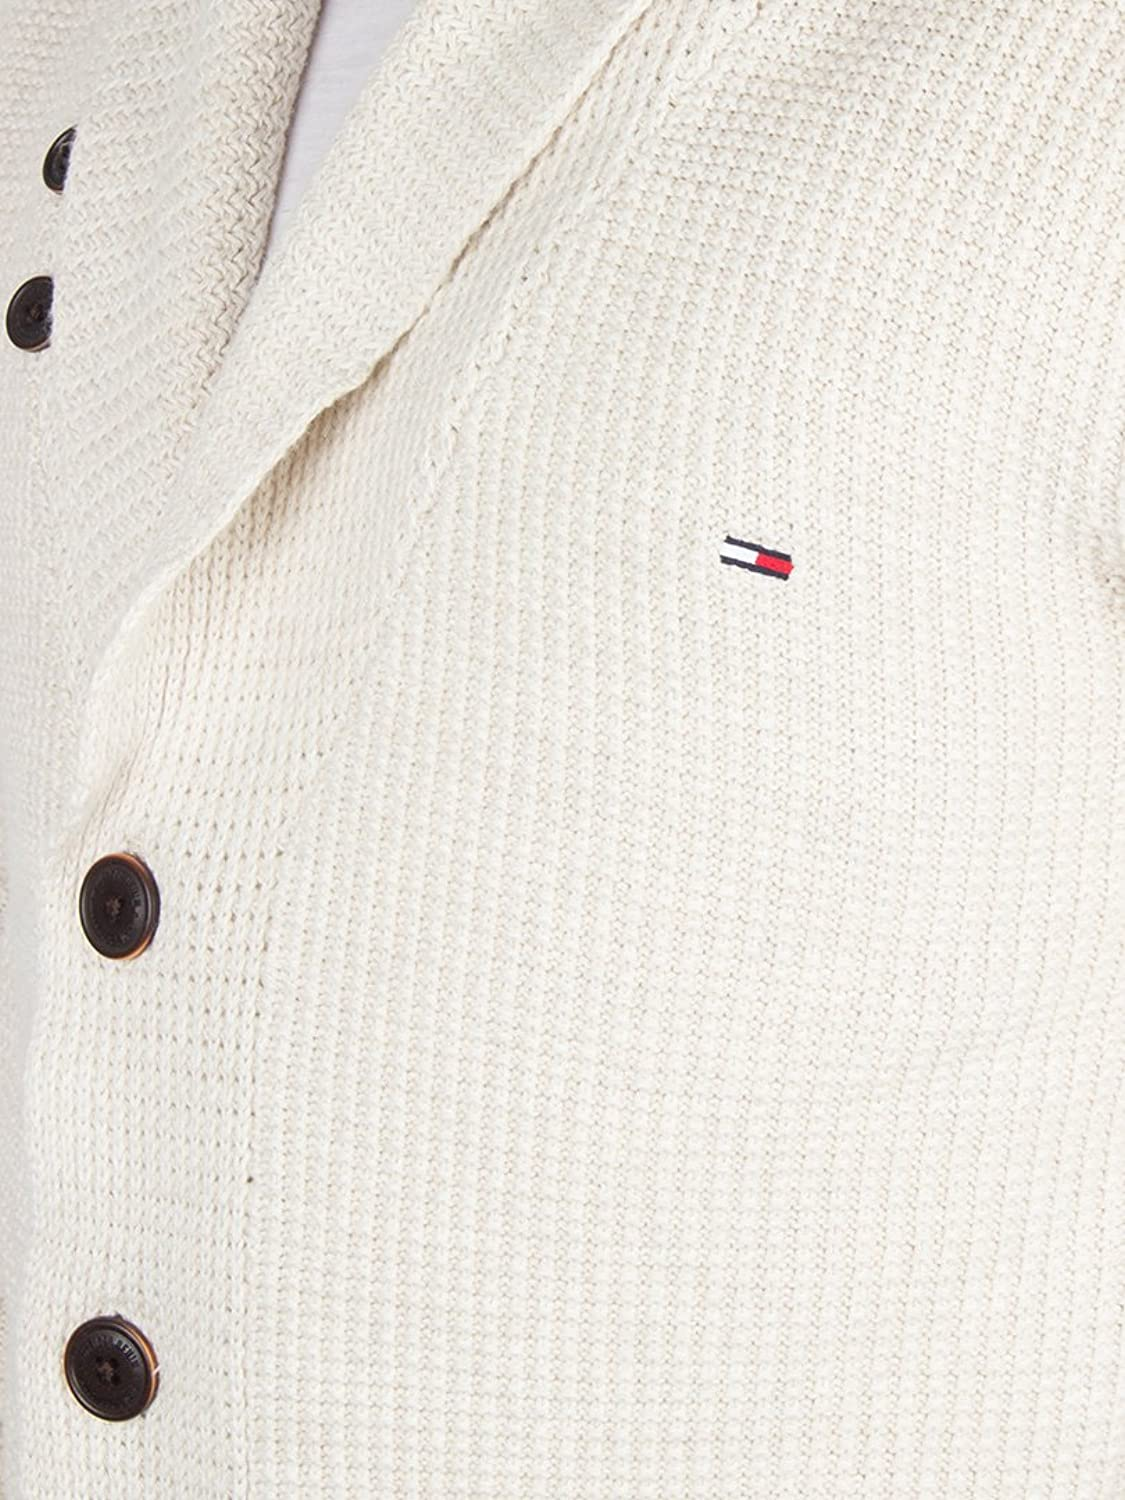 Hilfiger Denim Men's SN Shawl Neck Logo Cardigan Knit, White